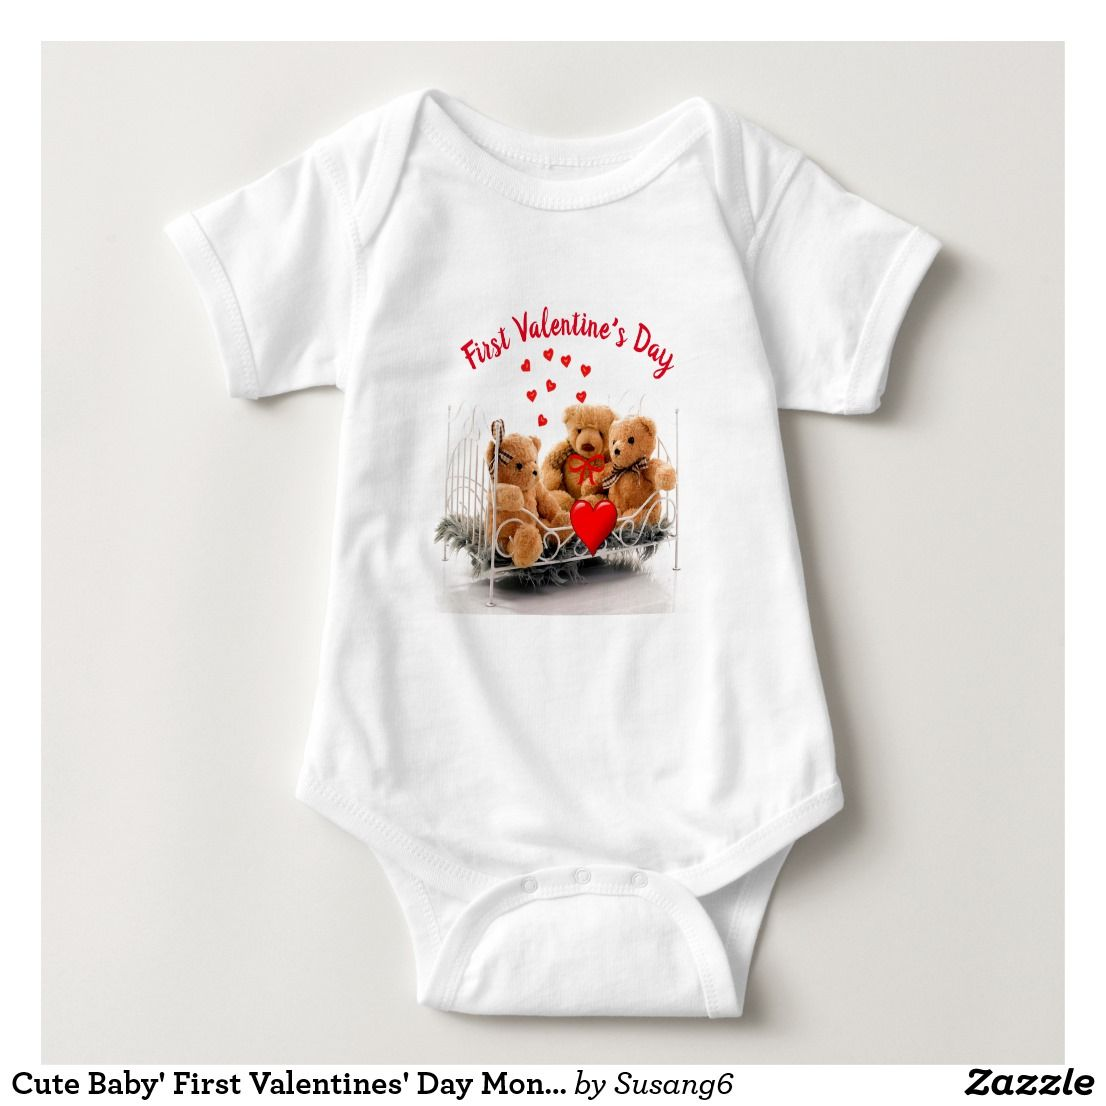 Cute Baby' First Valentines' Day Monogram #babyclothes #teddybear  #valentinesday